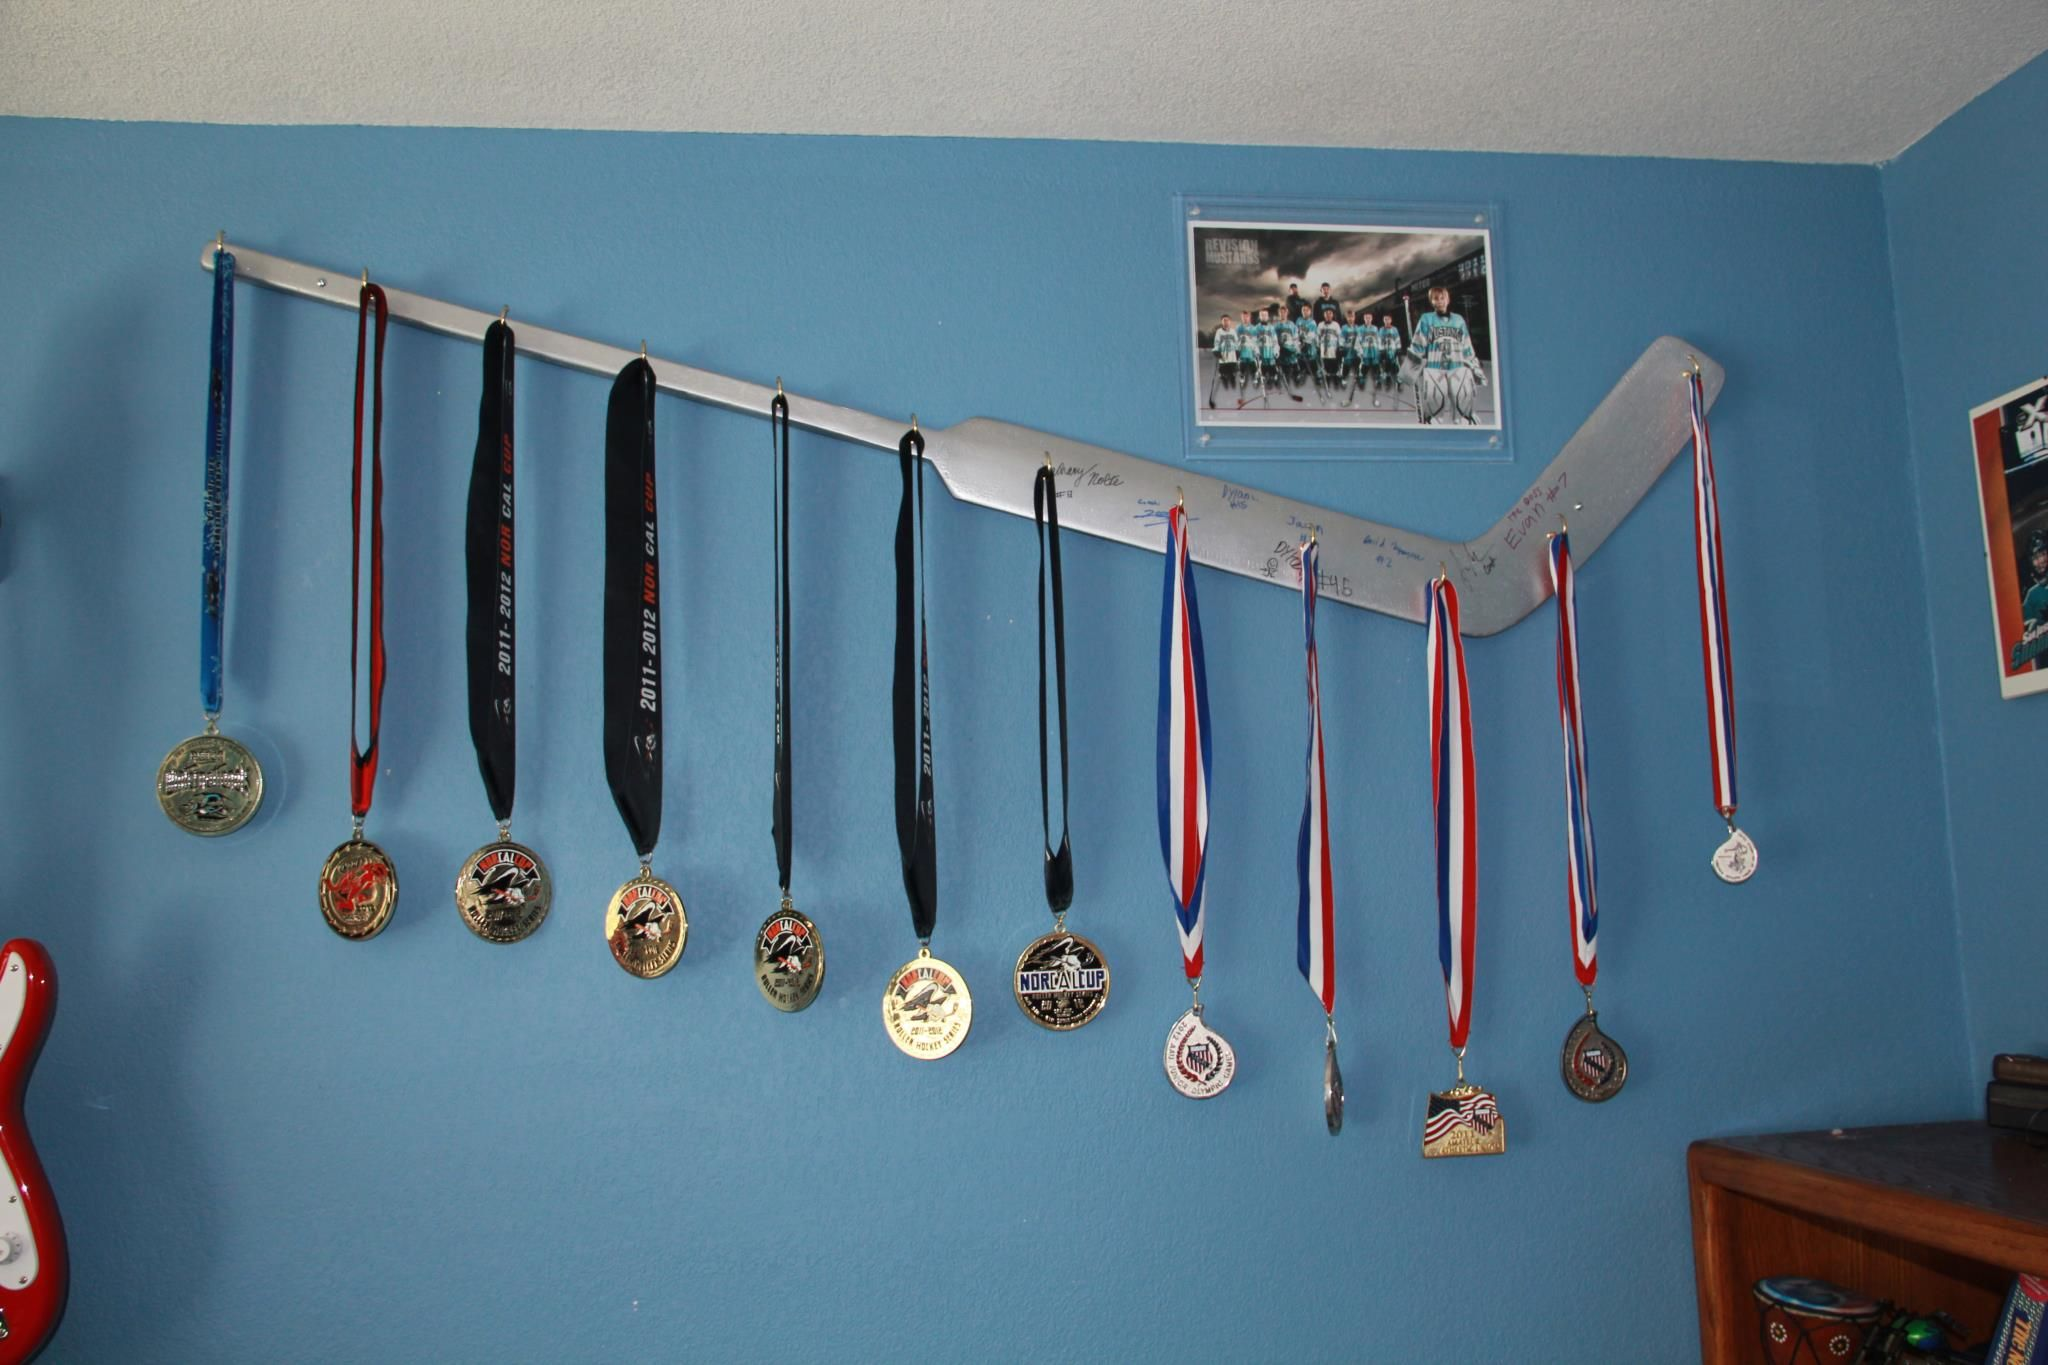 Clever way to hang medals. Could do this with lots of sports. Baseball bat, etc.